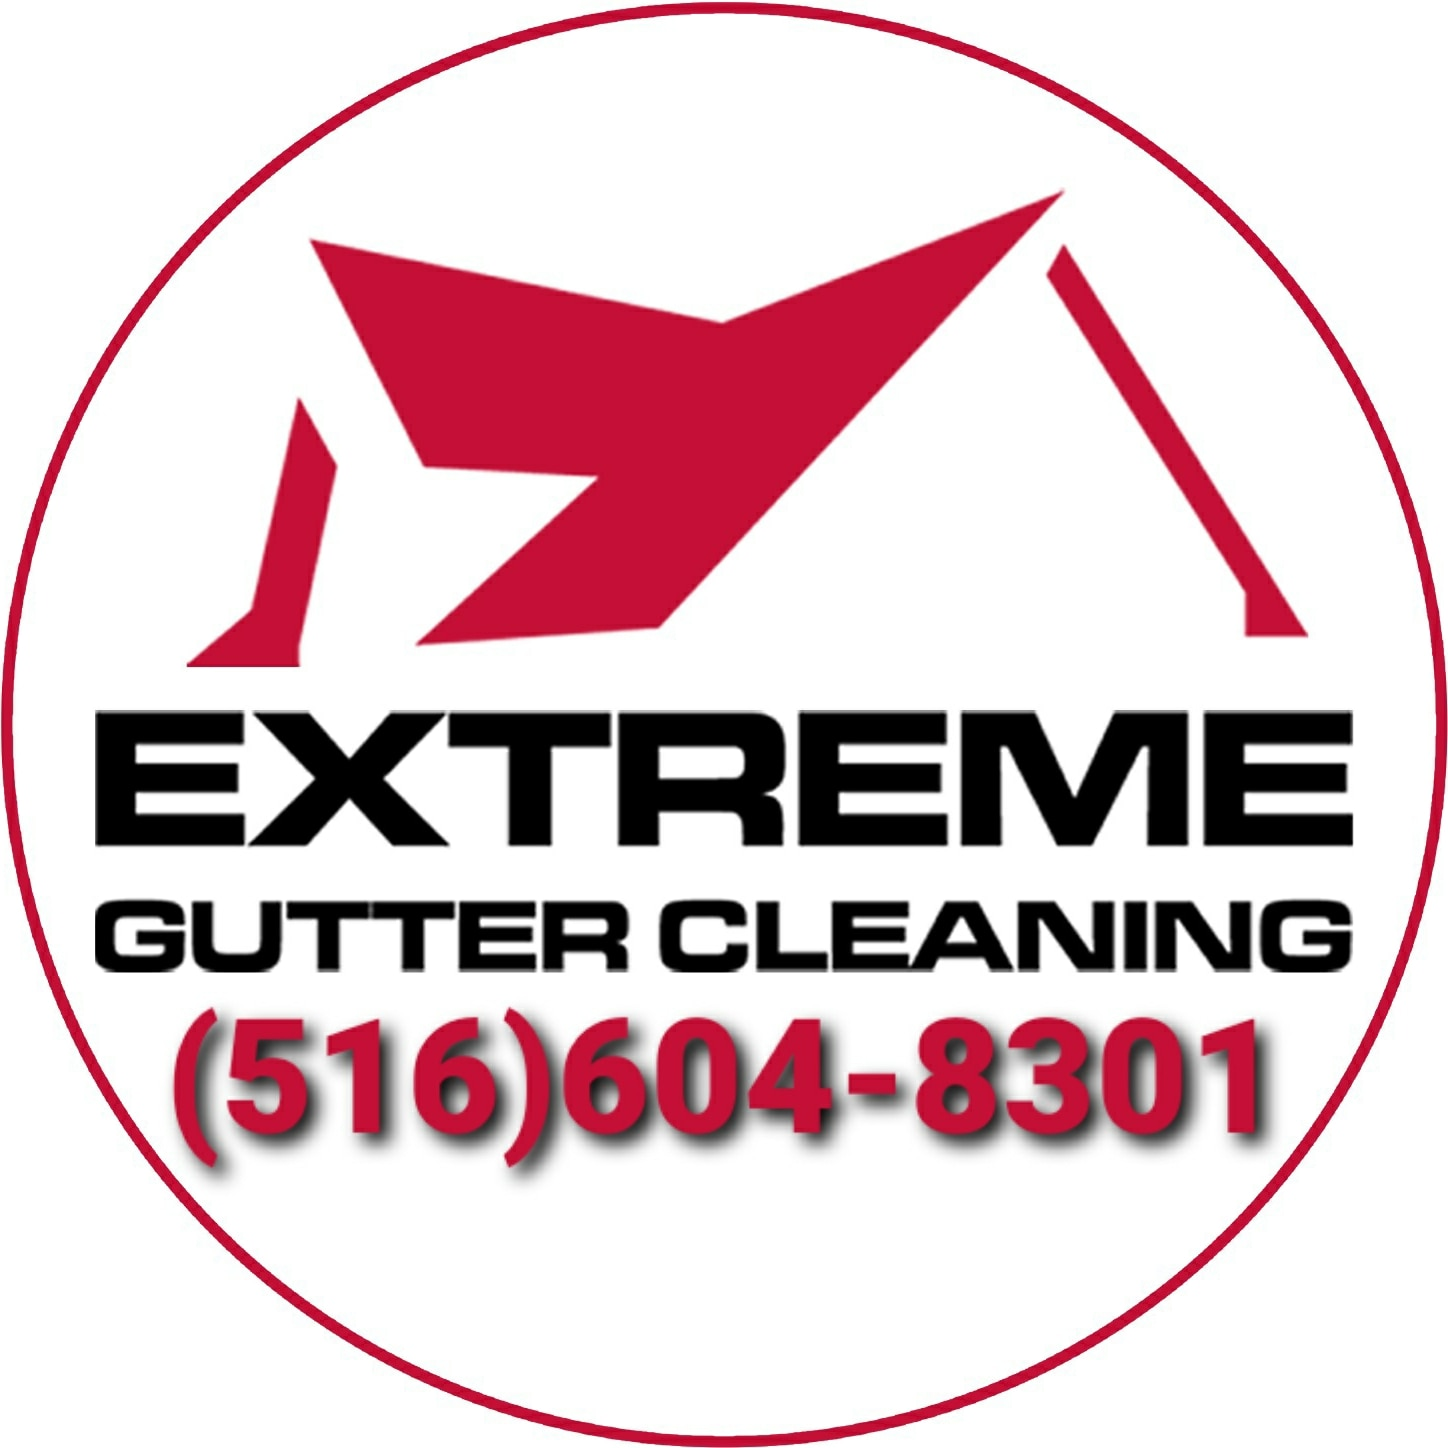 EXTREME Gutter Cleaning logo